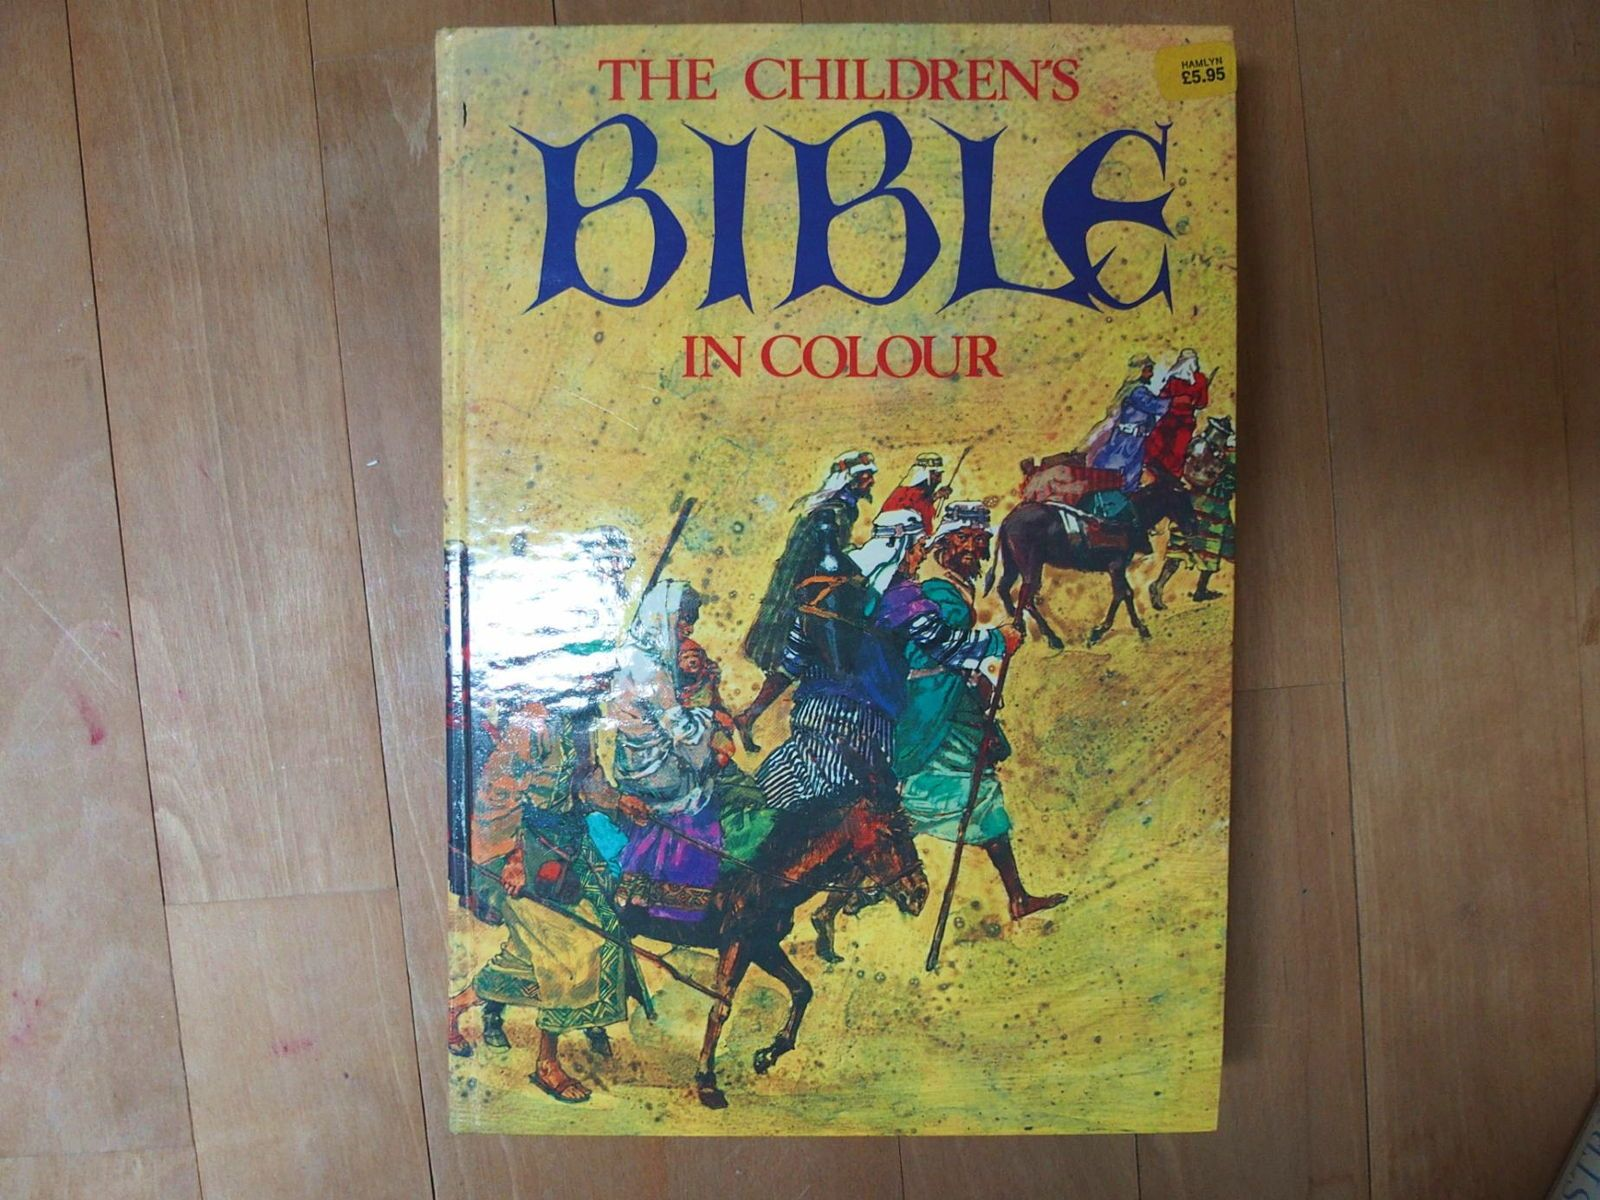 The Children's Bible, in colour